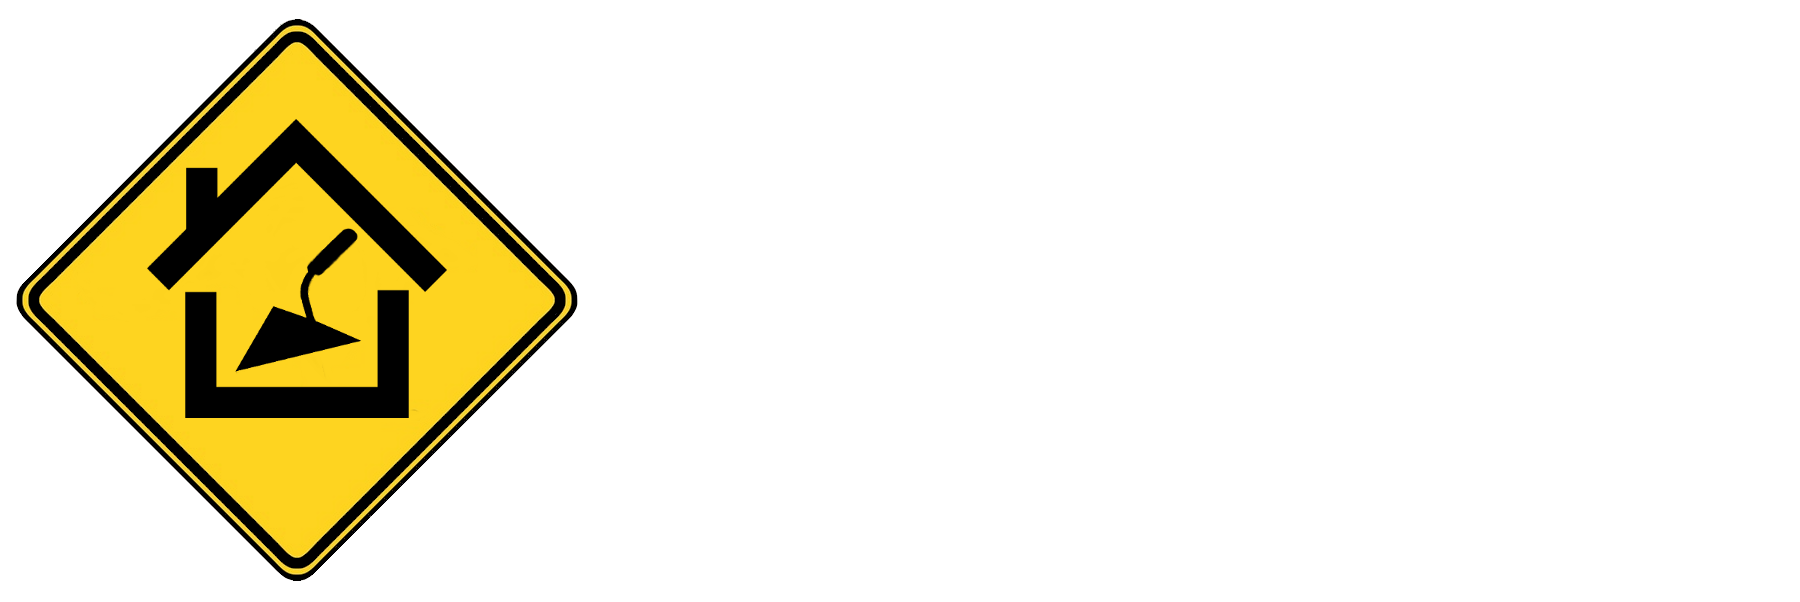 Euro-Remont s.c.